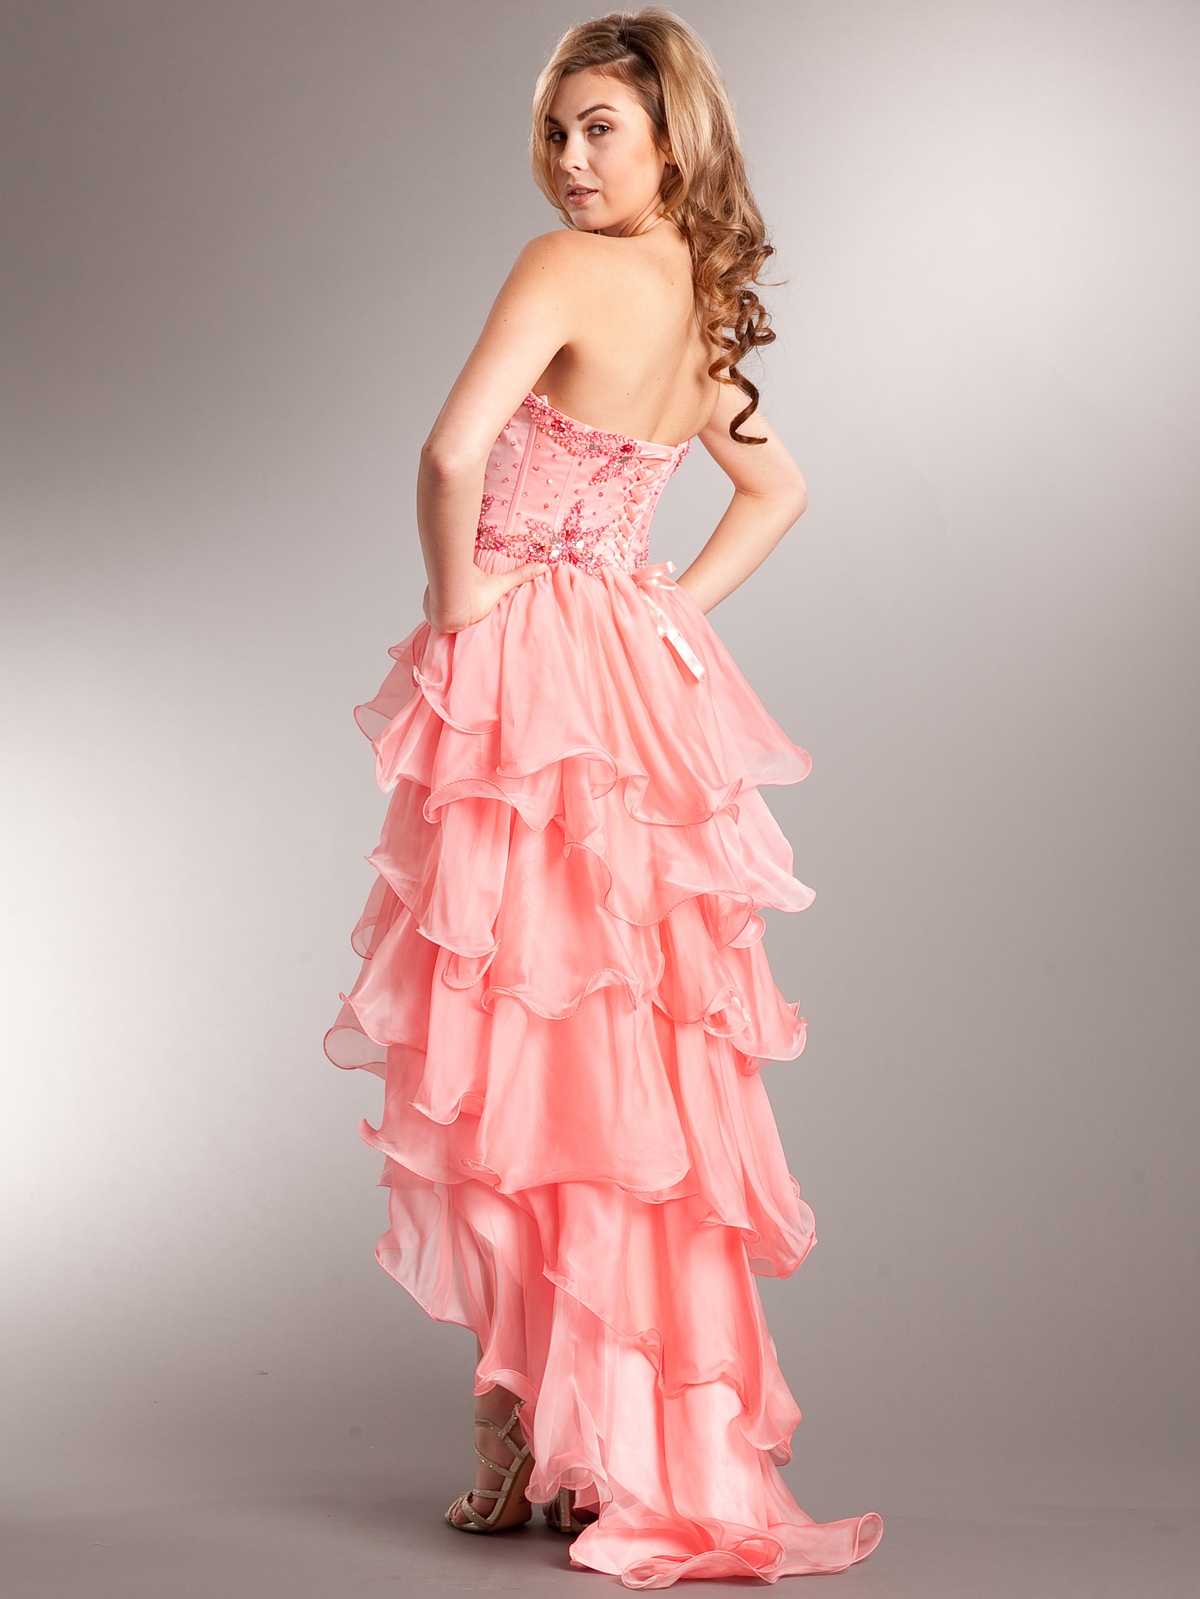 Corset Top High-low Prom Dress | Sung Boutique L.A.